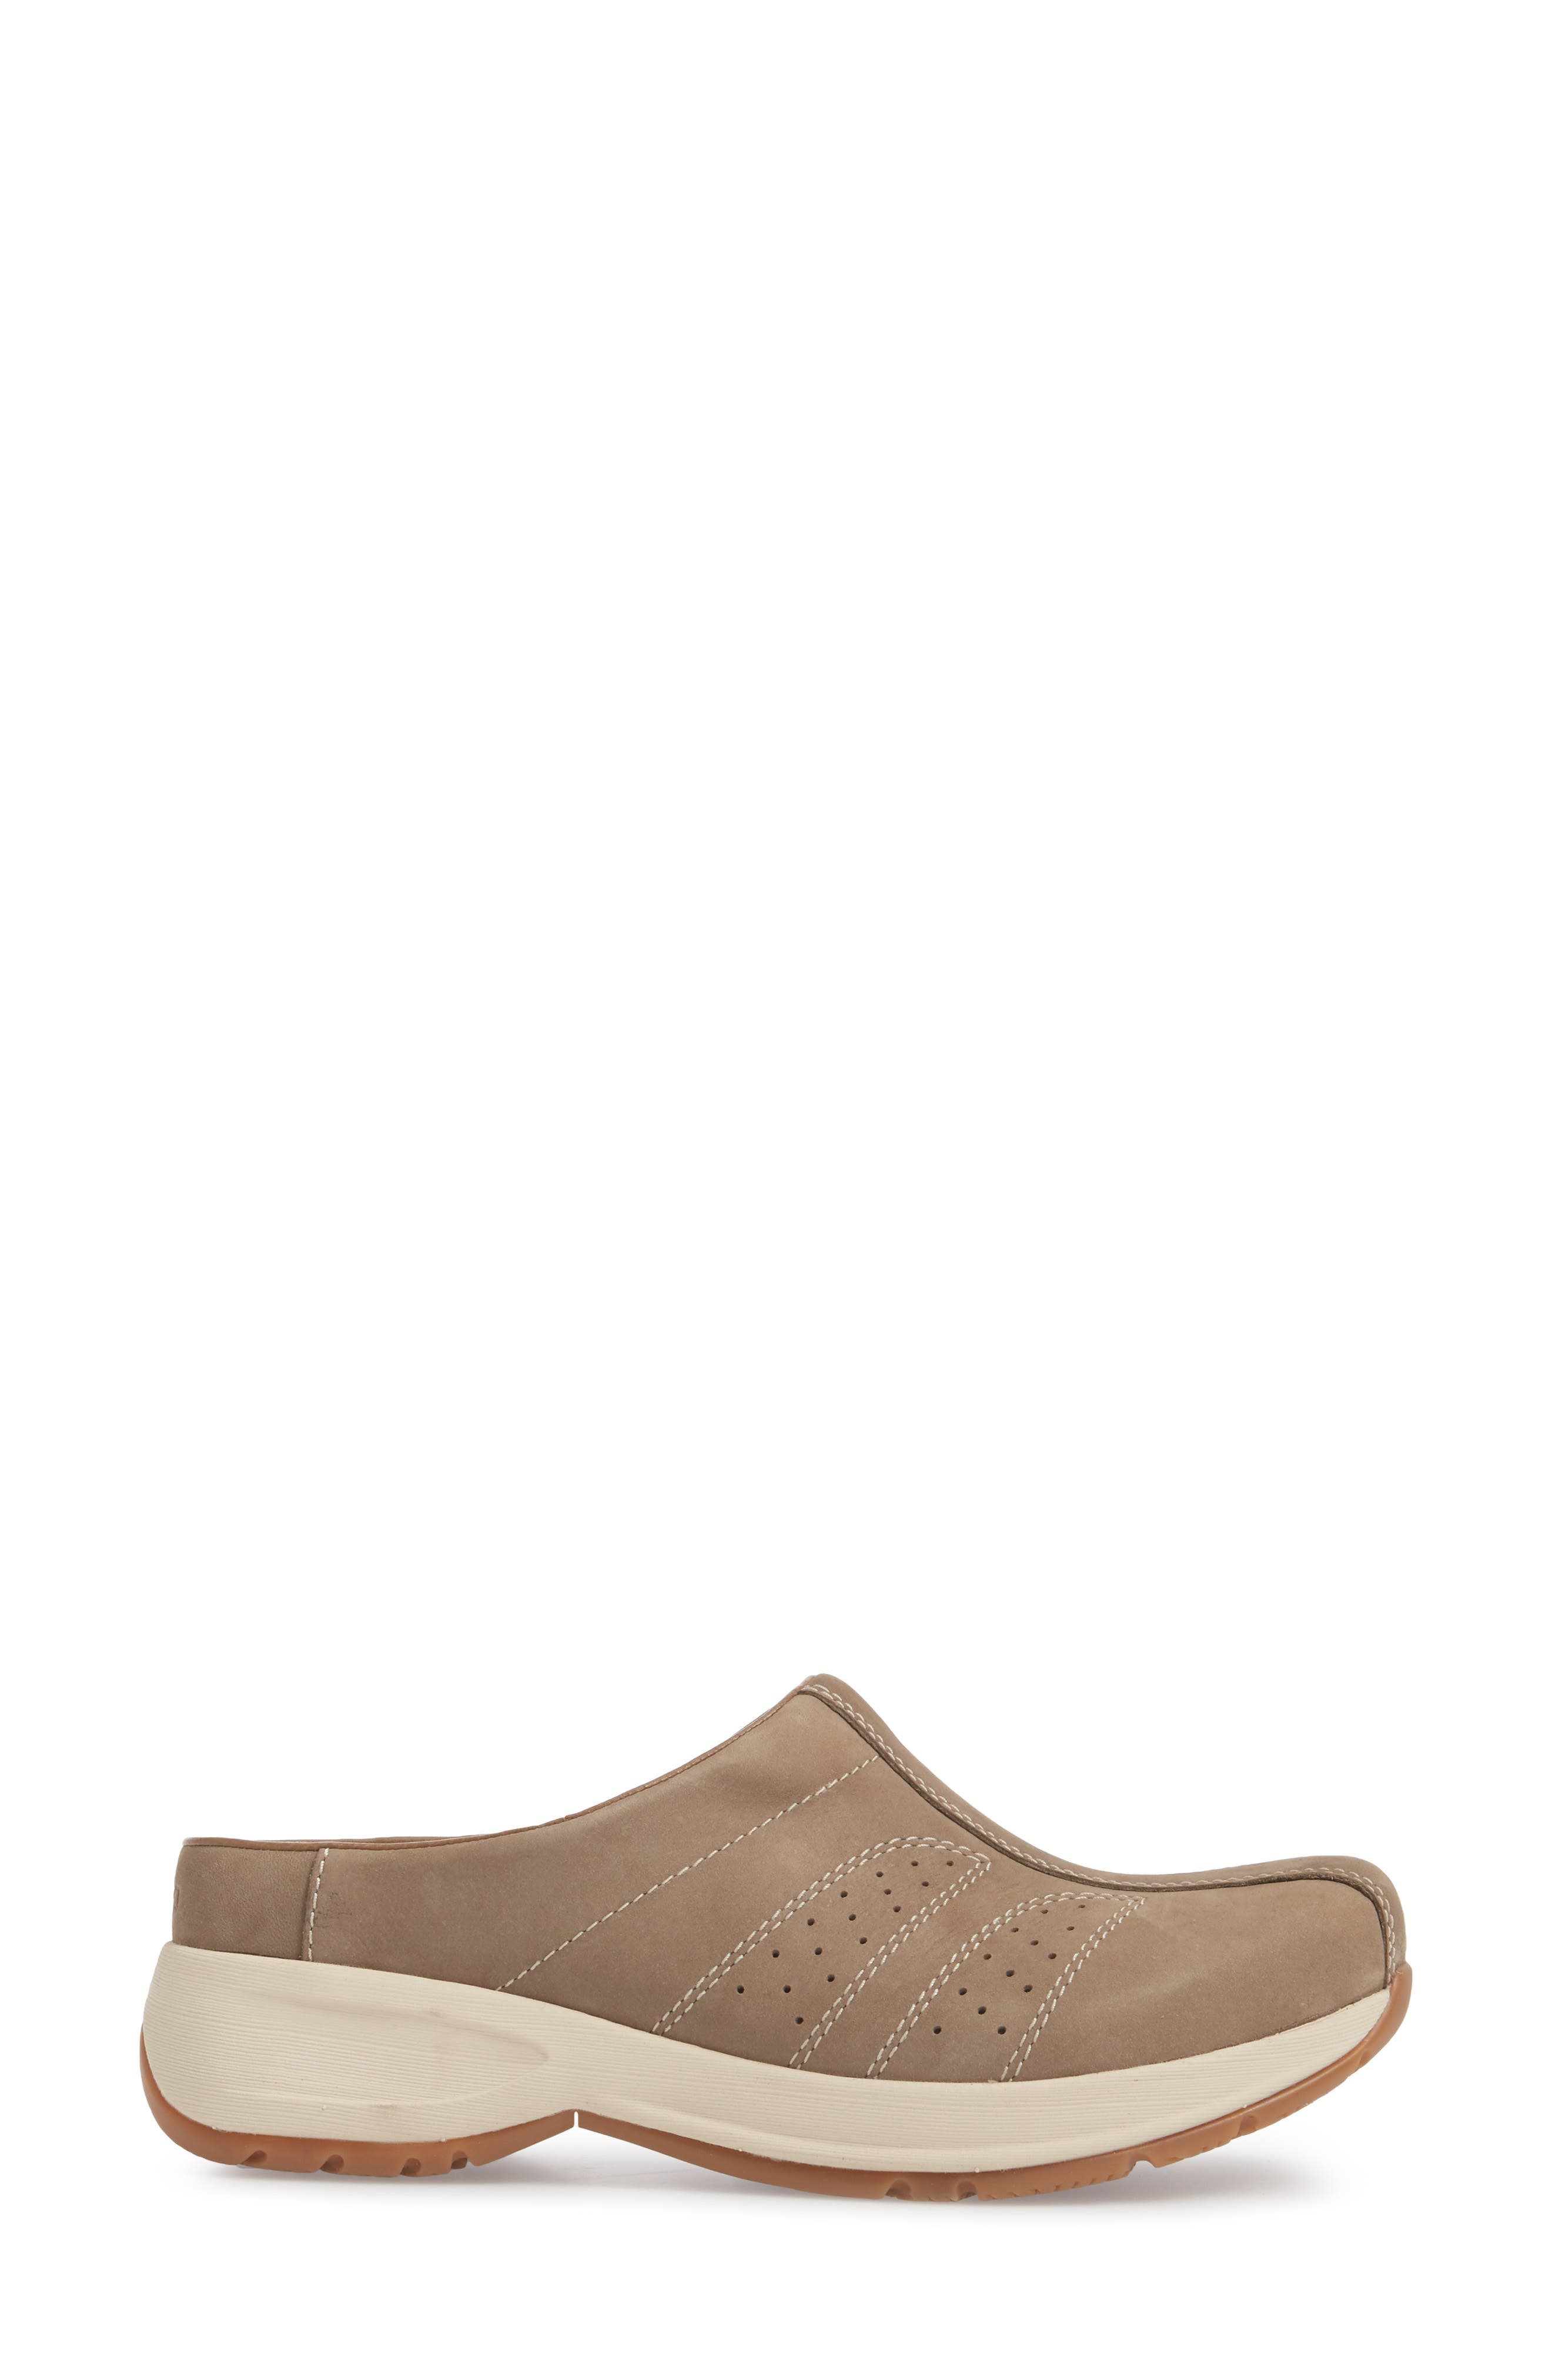 Dankso Shelly Mule,                             Alternate thumbnail 3, color,                             TAUPE MILLED NUBUCK LEATHER